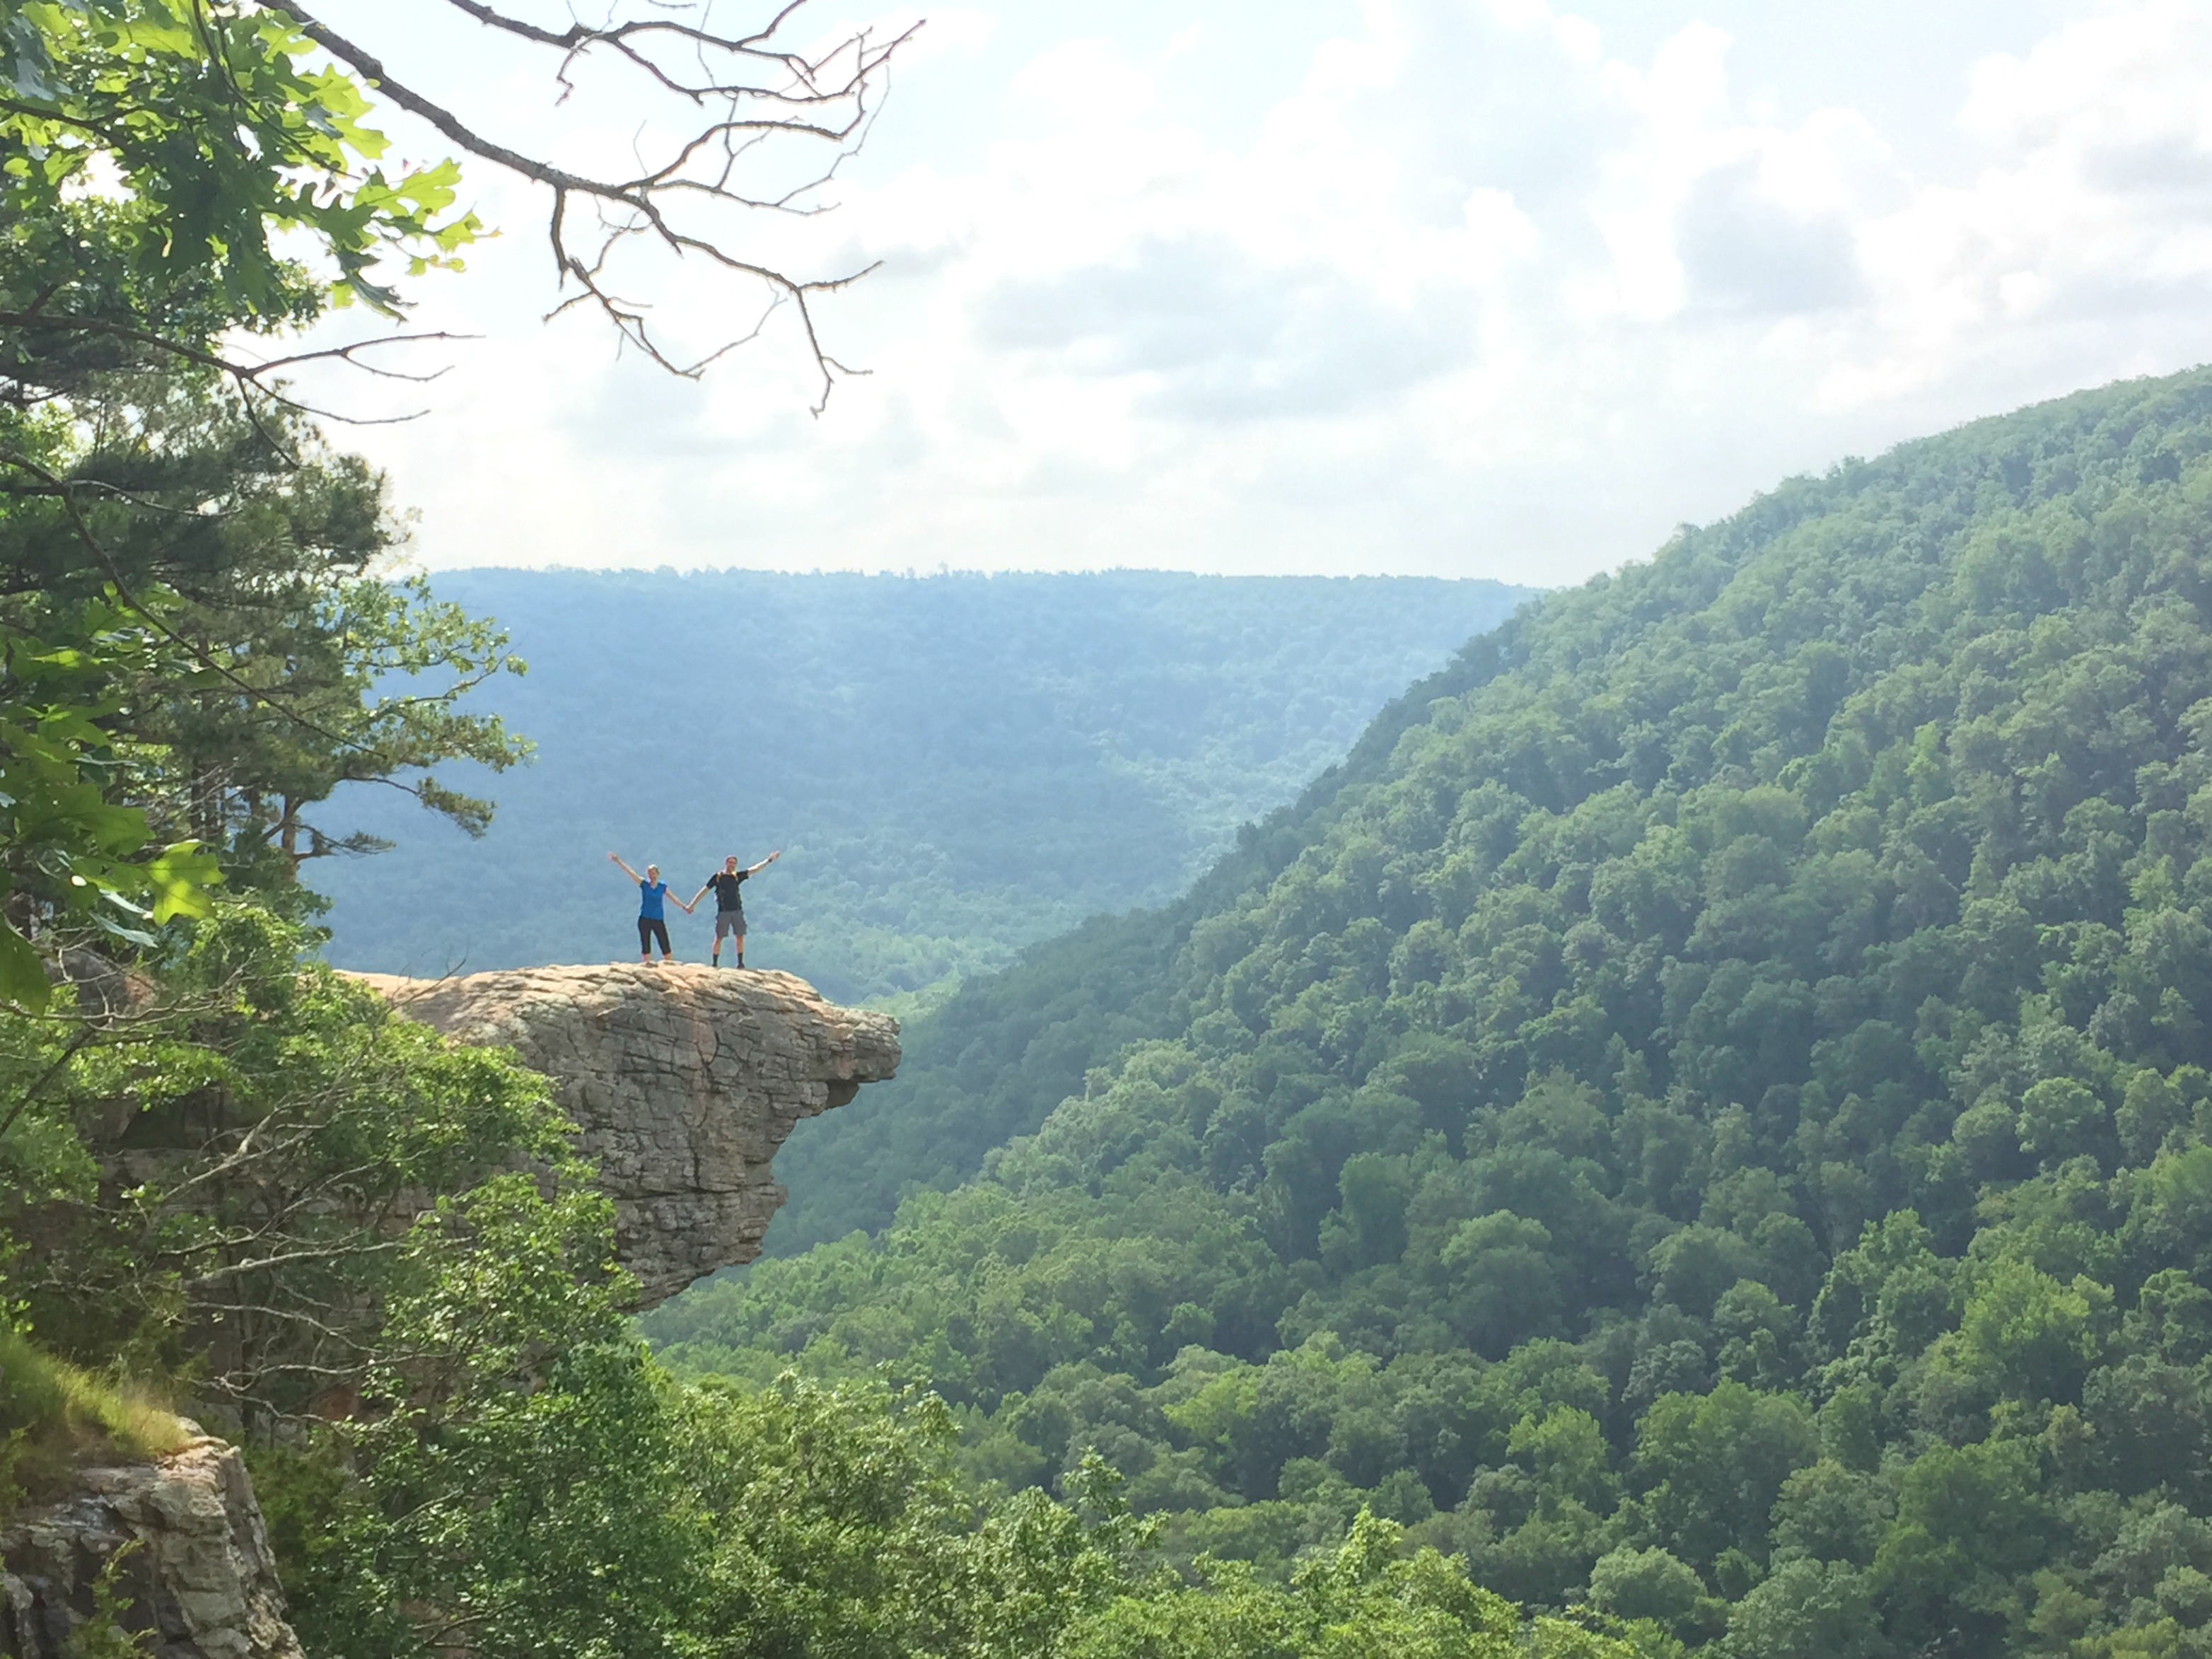 6 MUST-DOS AT ARKANSAS' BUFFALO NATIONAL RIVER (besides a float trip!)